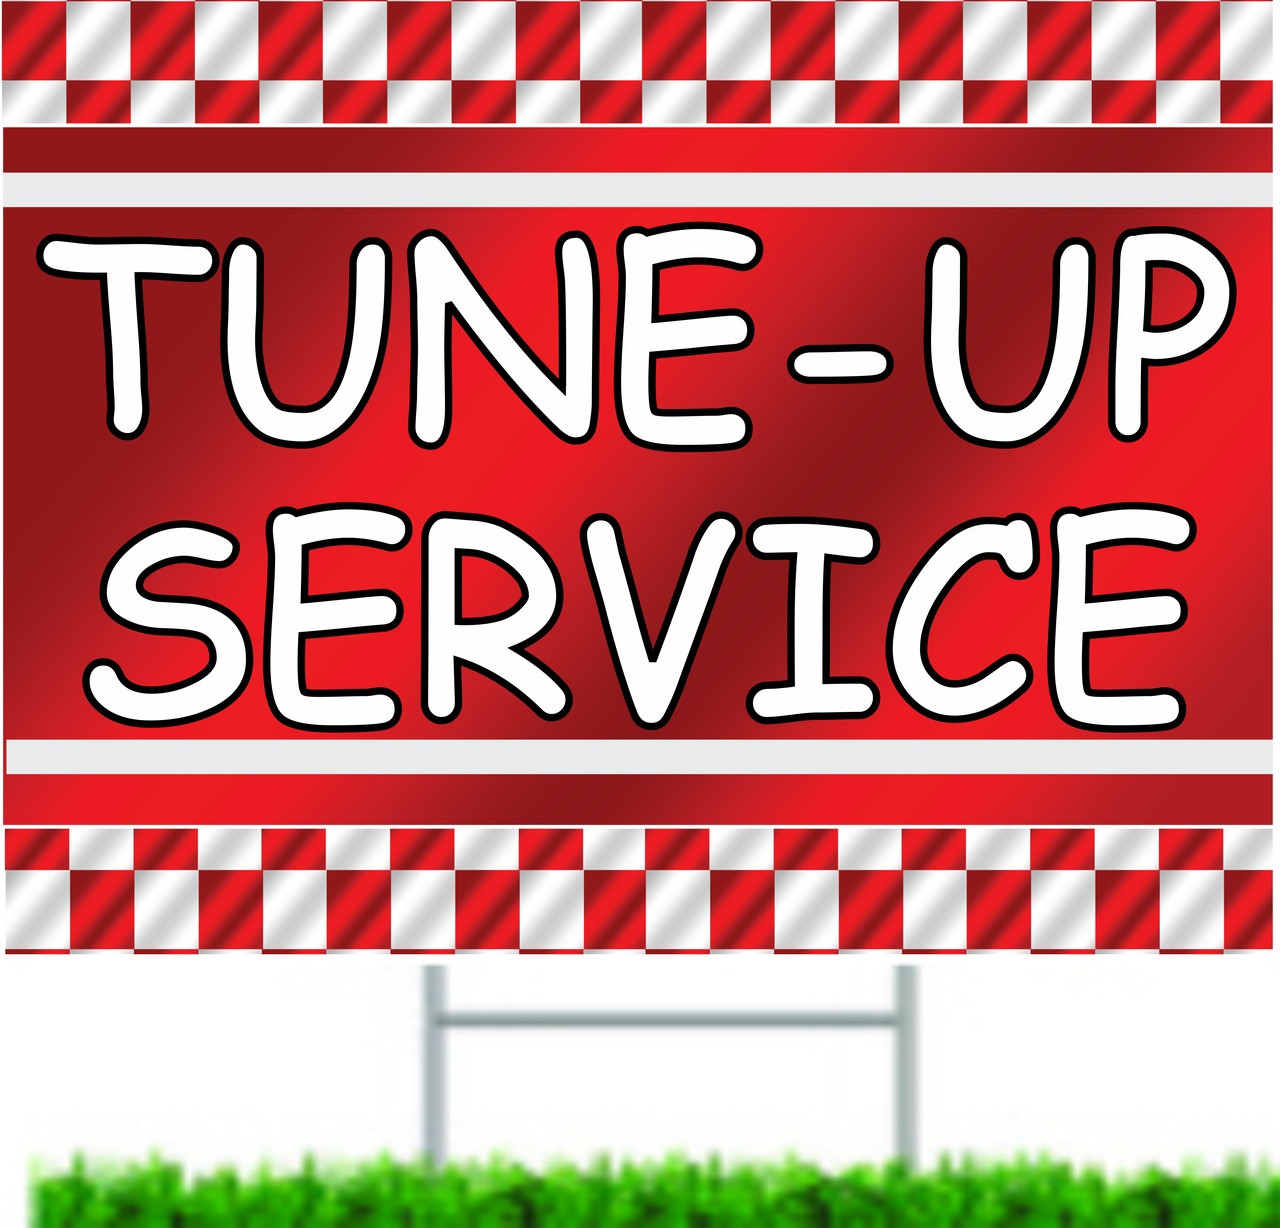 Tune-up Service Auto Dealer Curb/Yard Sign.